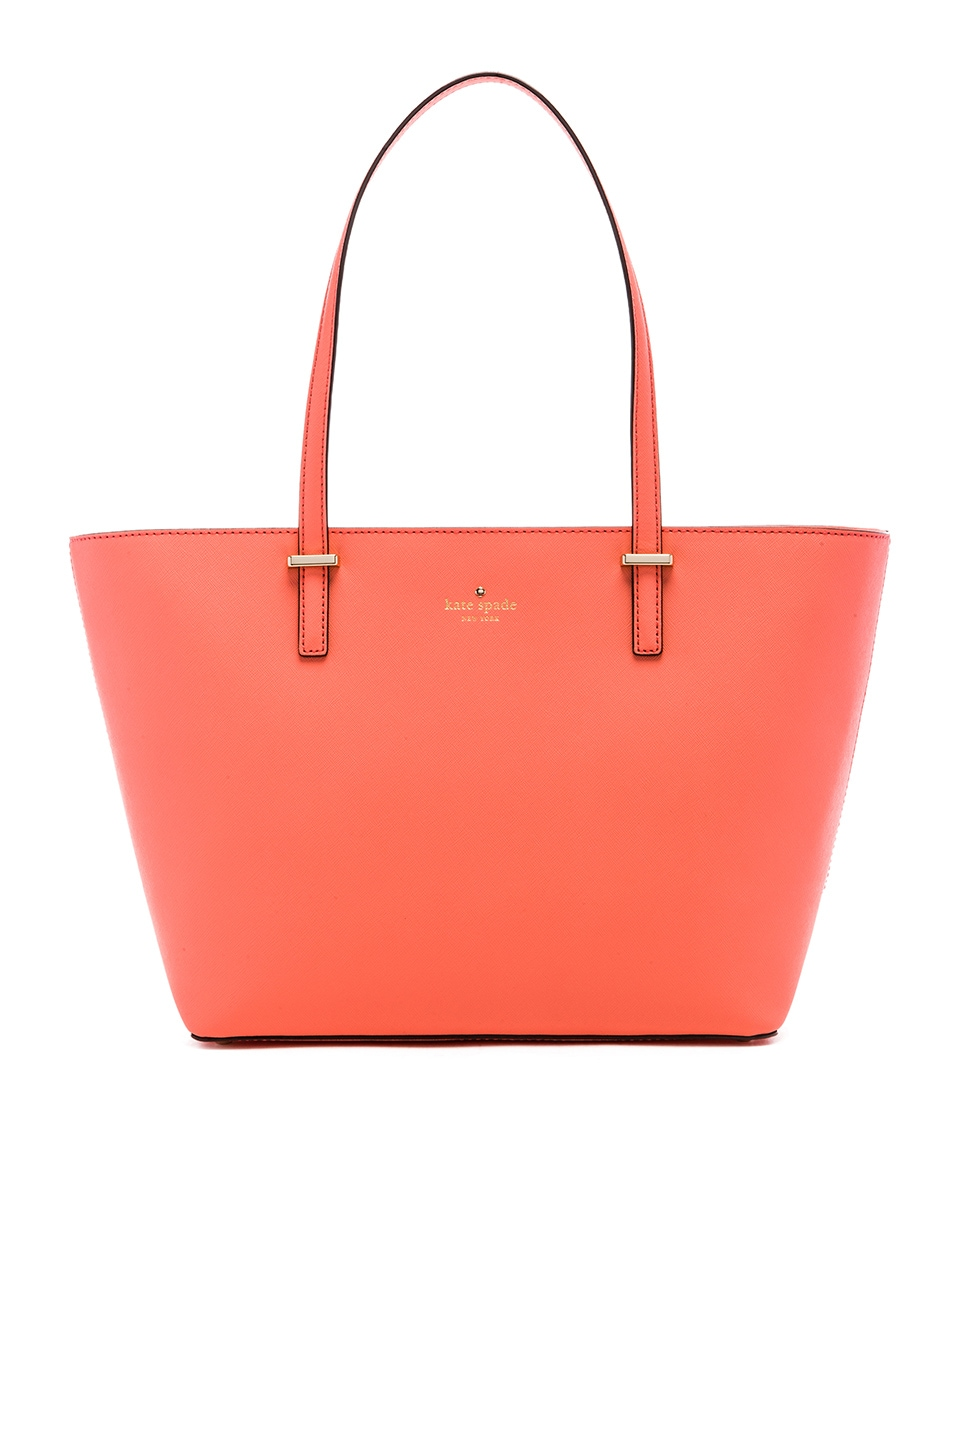 kate spade new york Small Harmony Tote in Guava